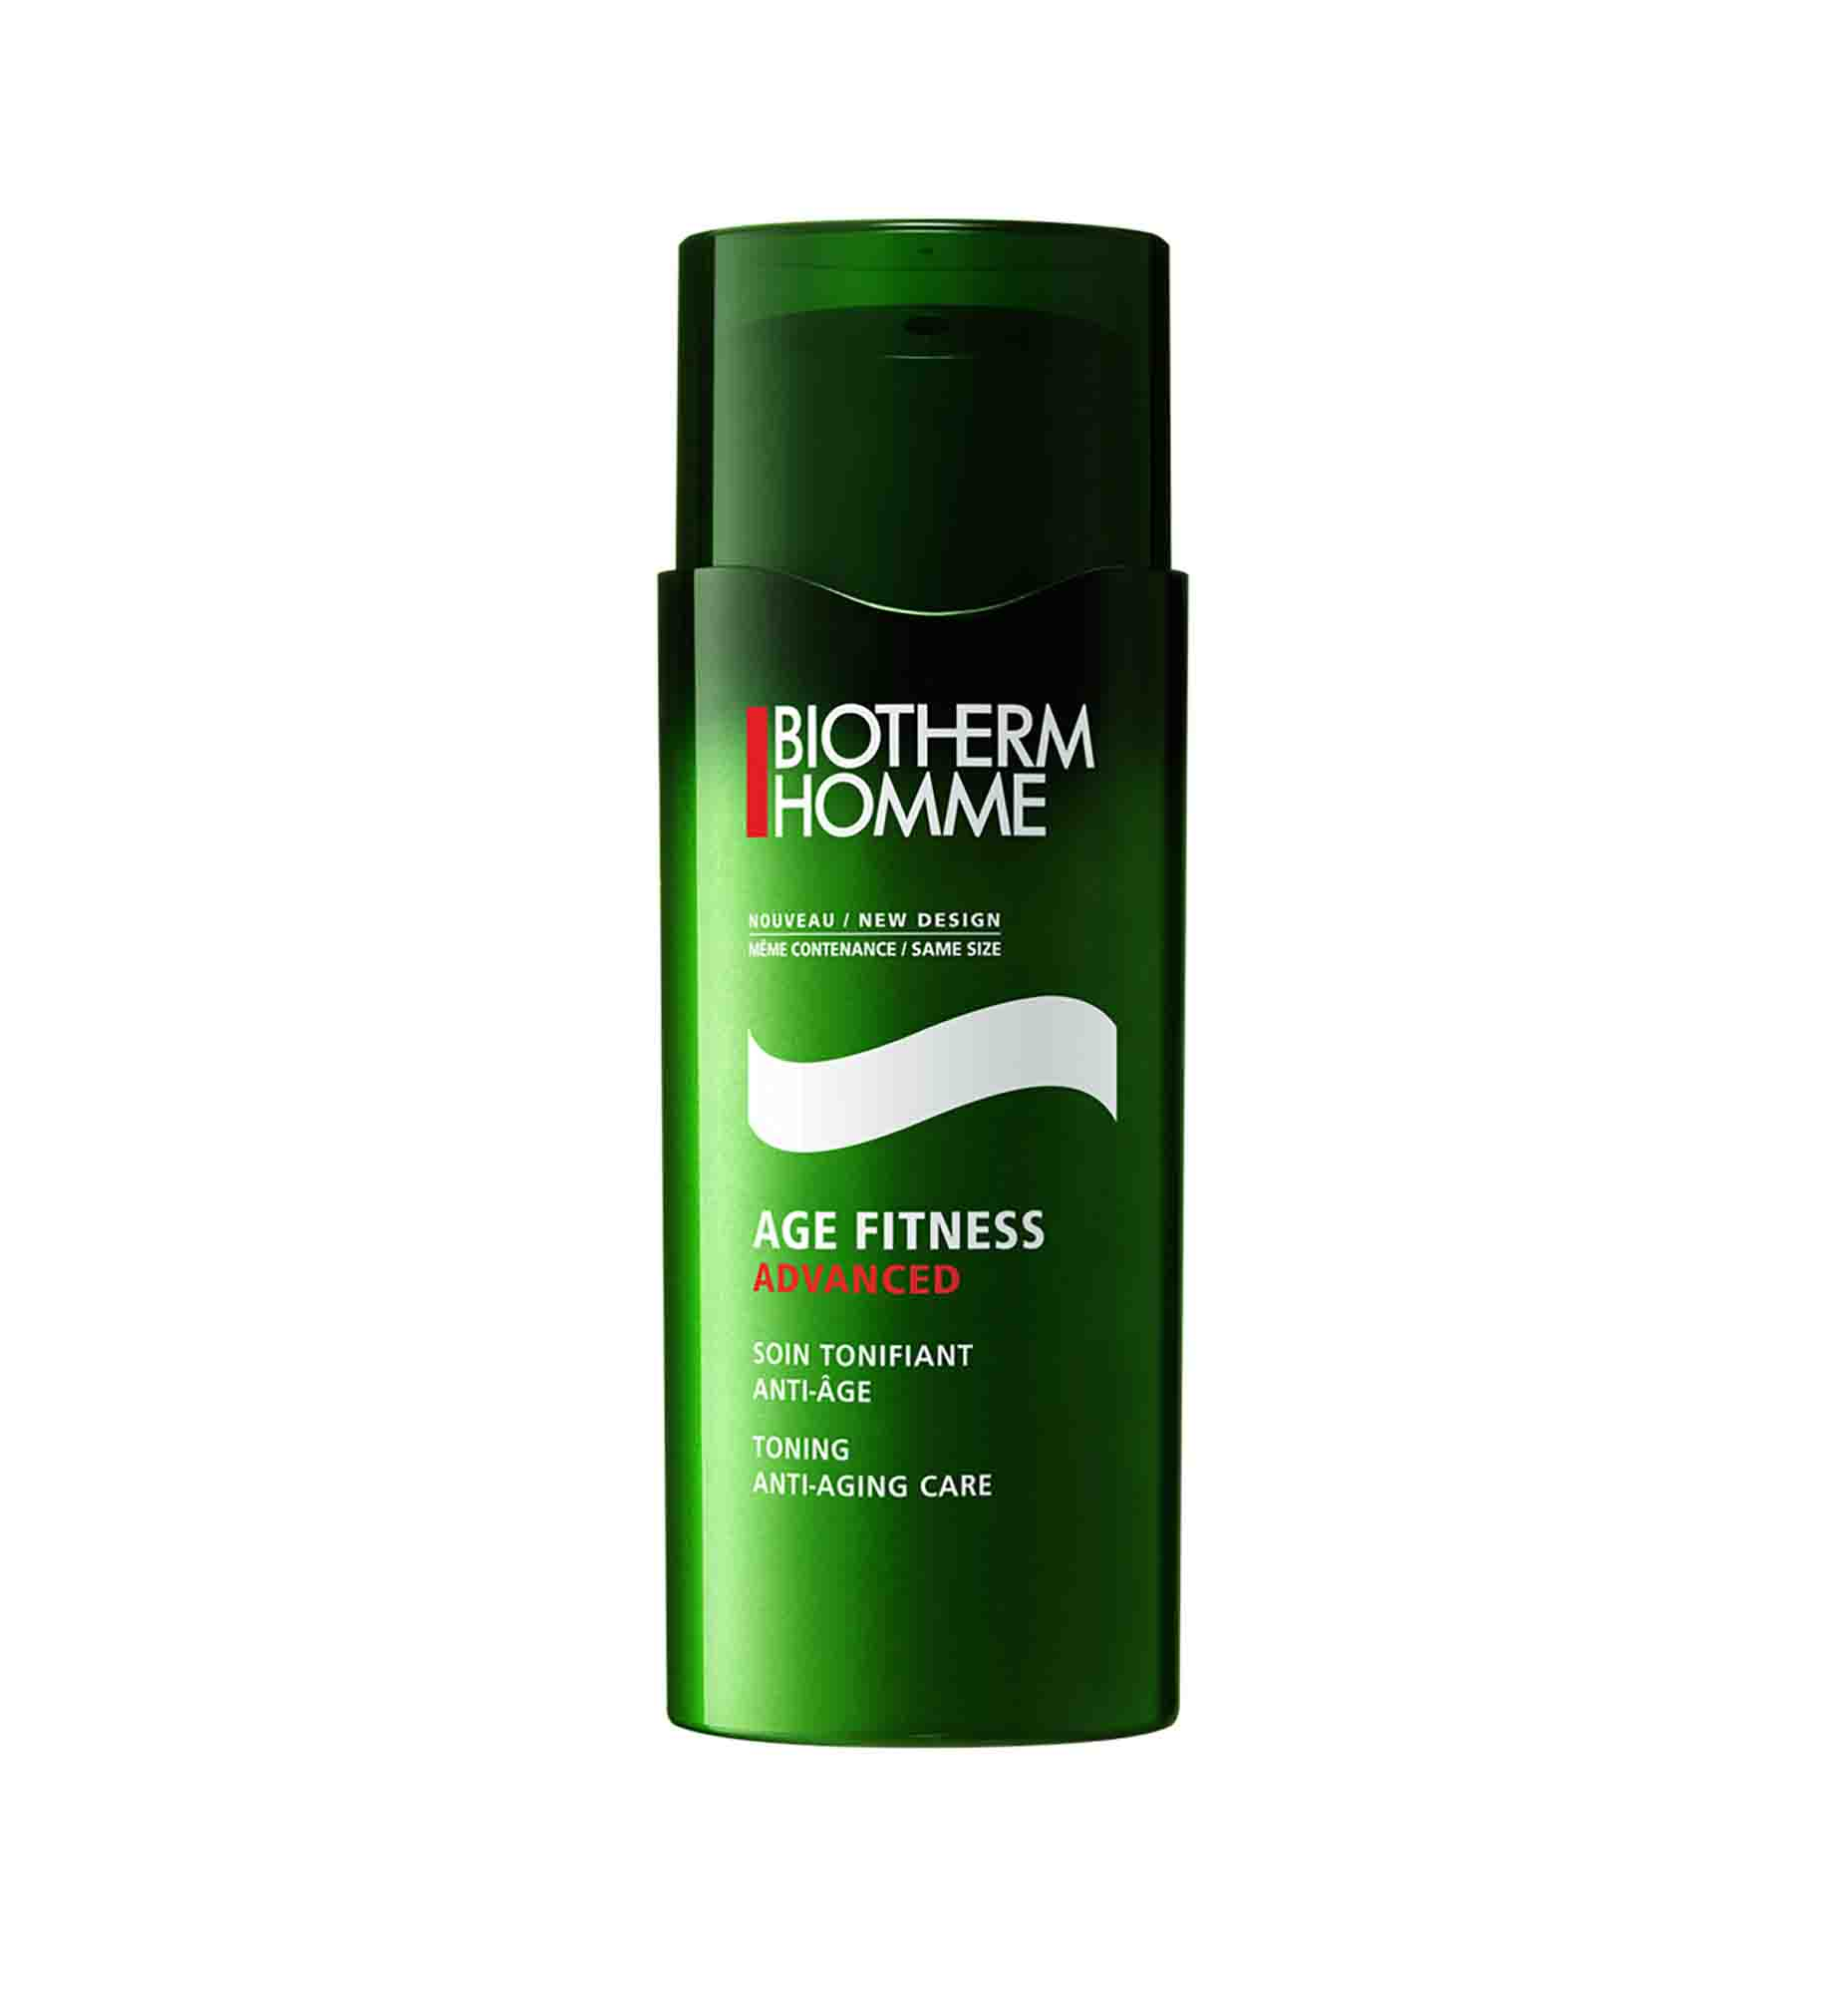 Biotherm Homme Age Fitness Age Fitness Soin Jour 50 ml 778192